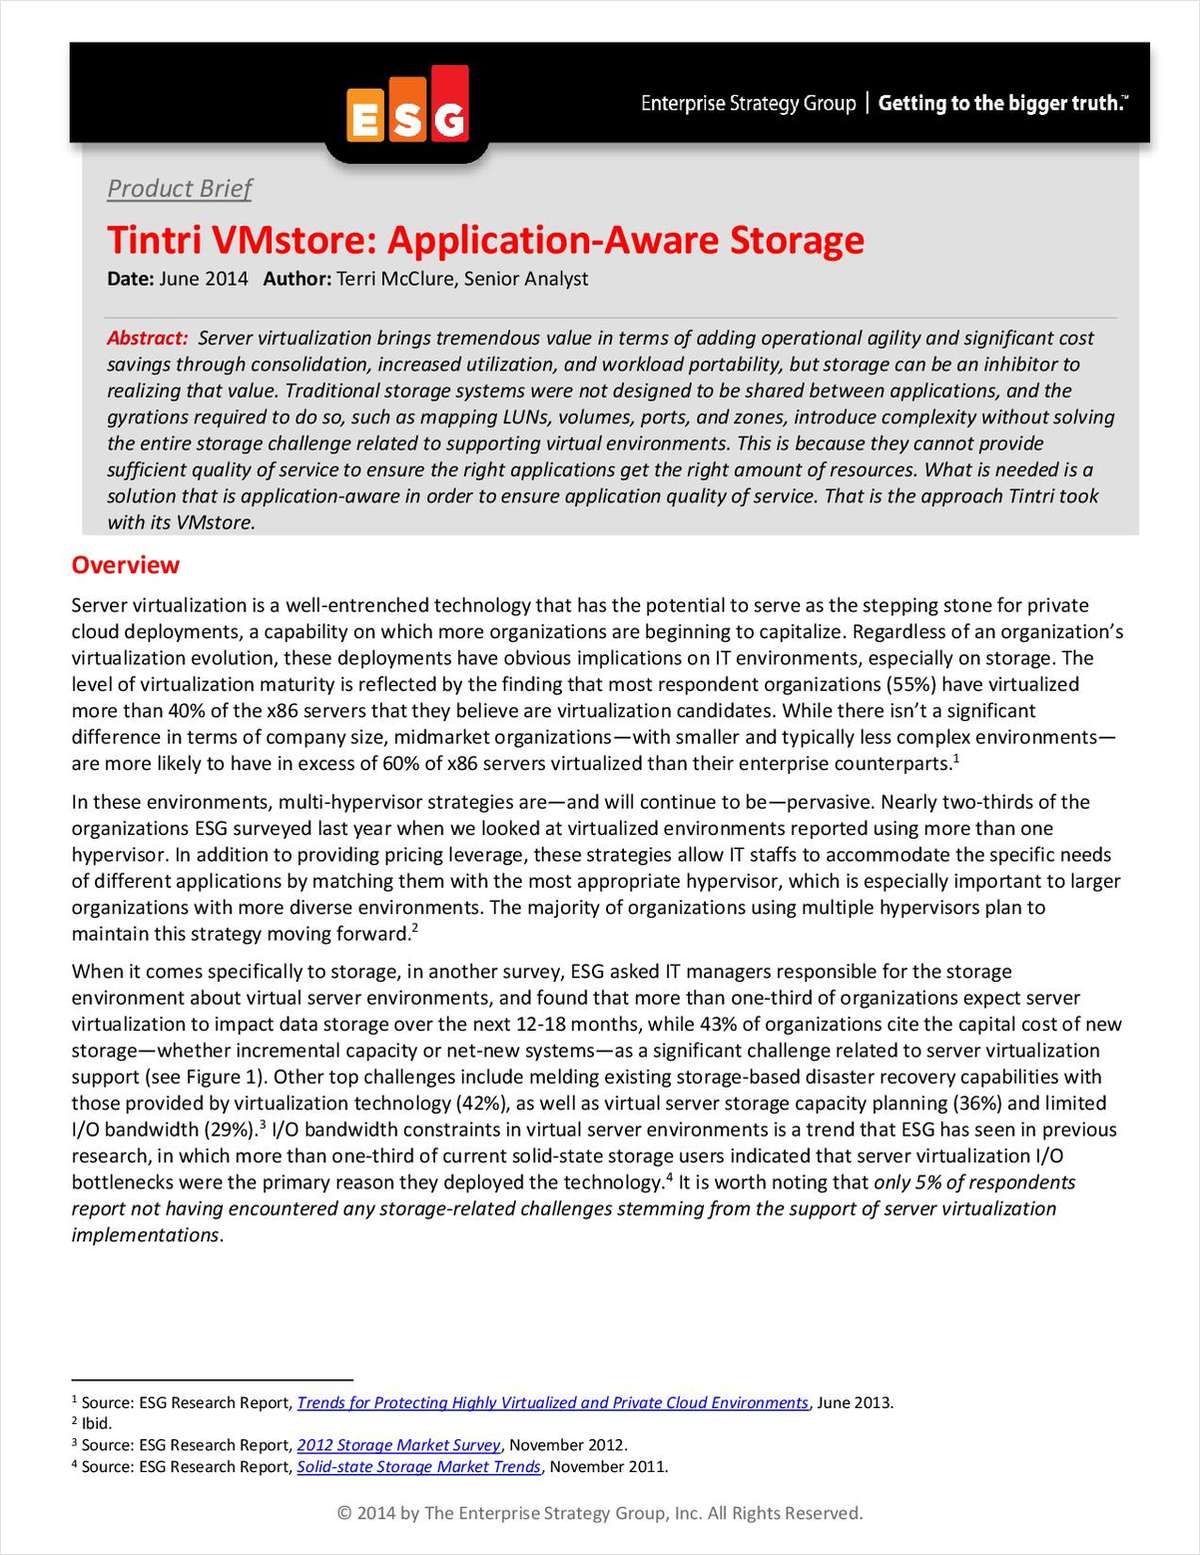 Tintri VMstore: Application-Aware Storage